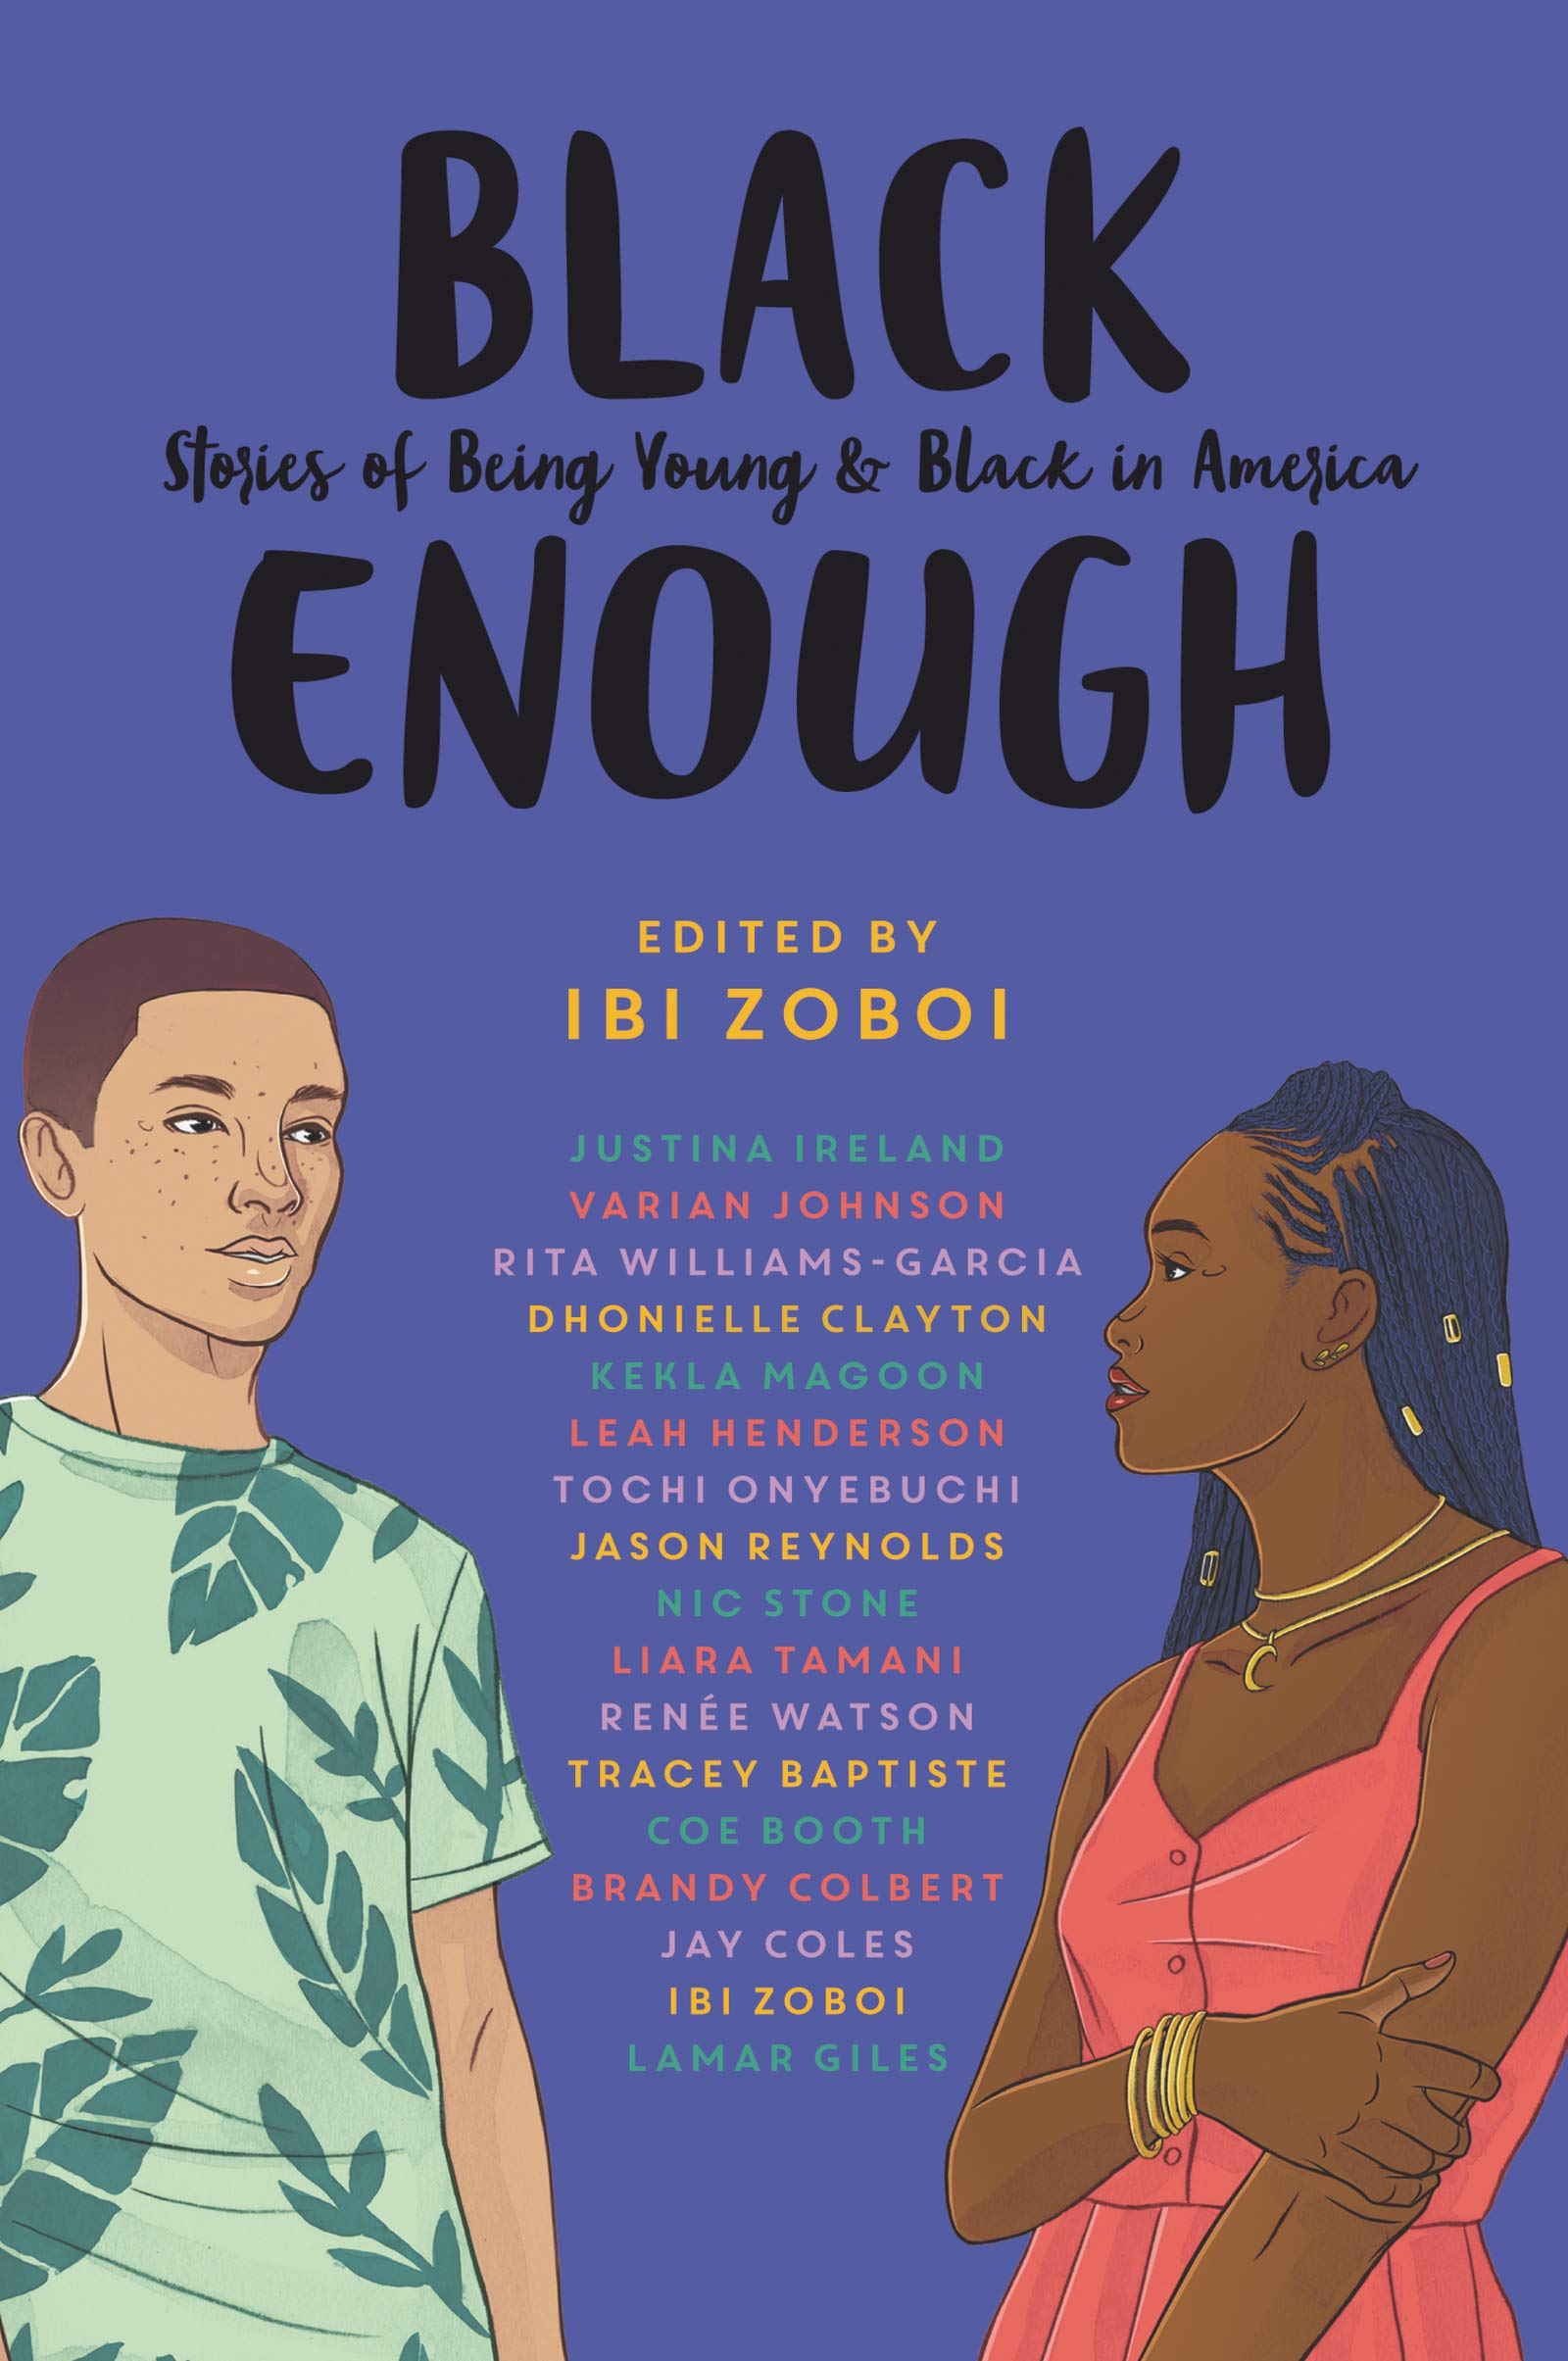 black enough Opens in new window